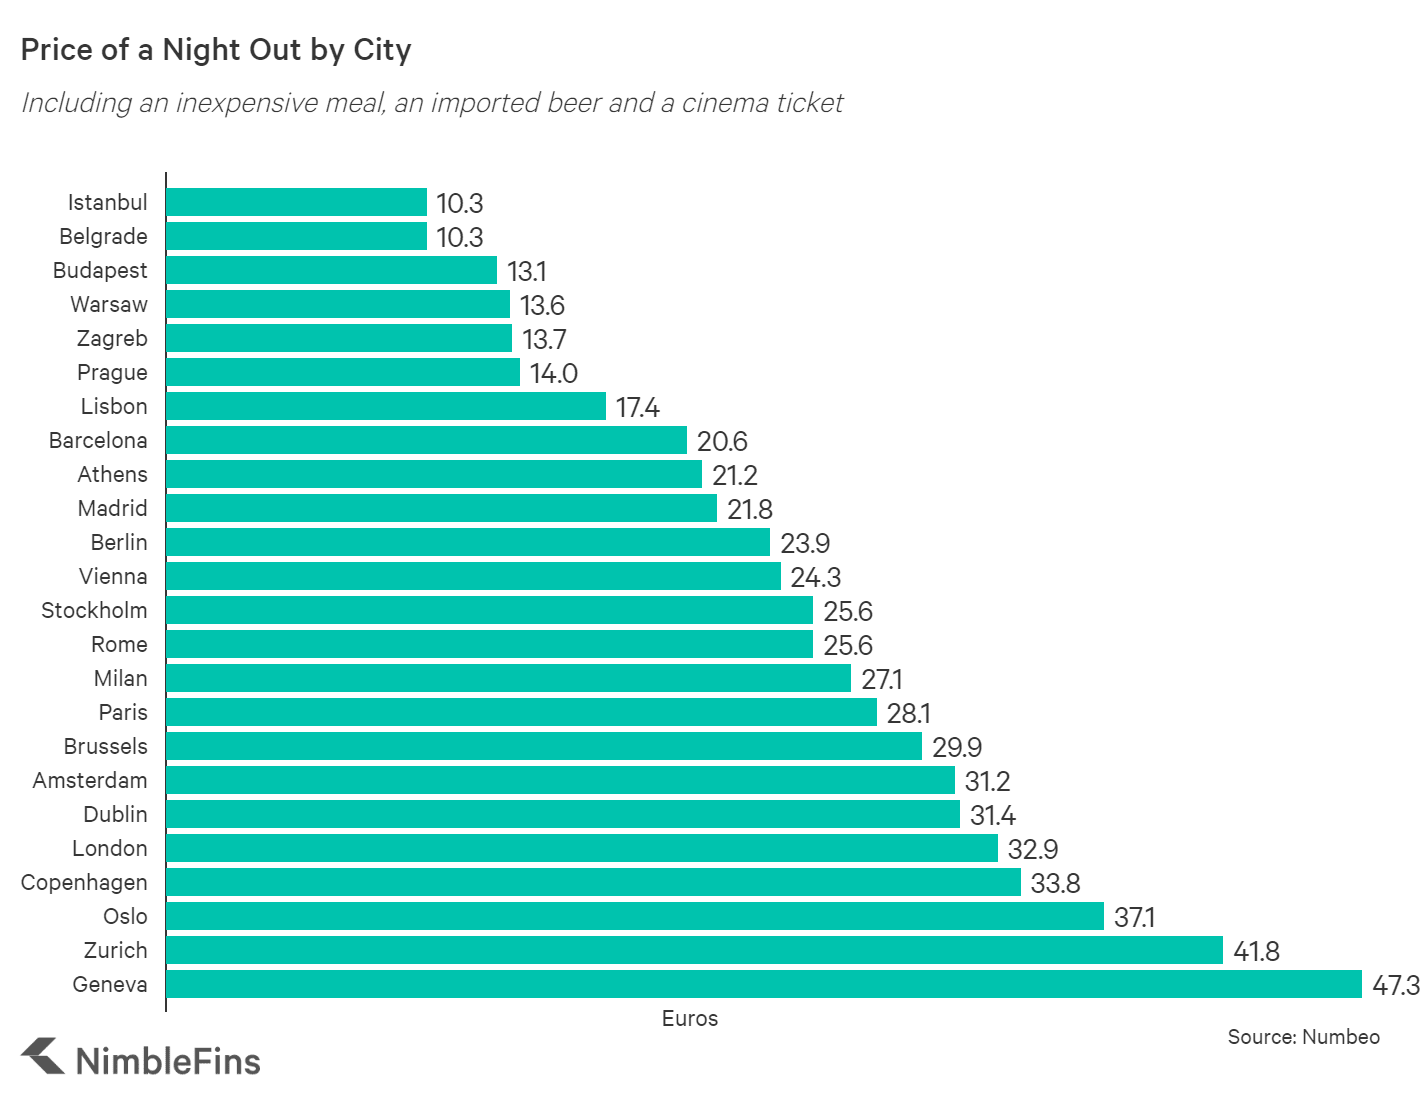 chart showing the cost of a beer, meal and cinema ticket by EU city